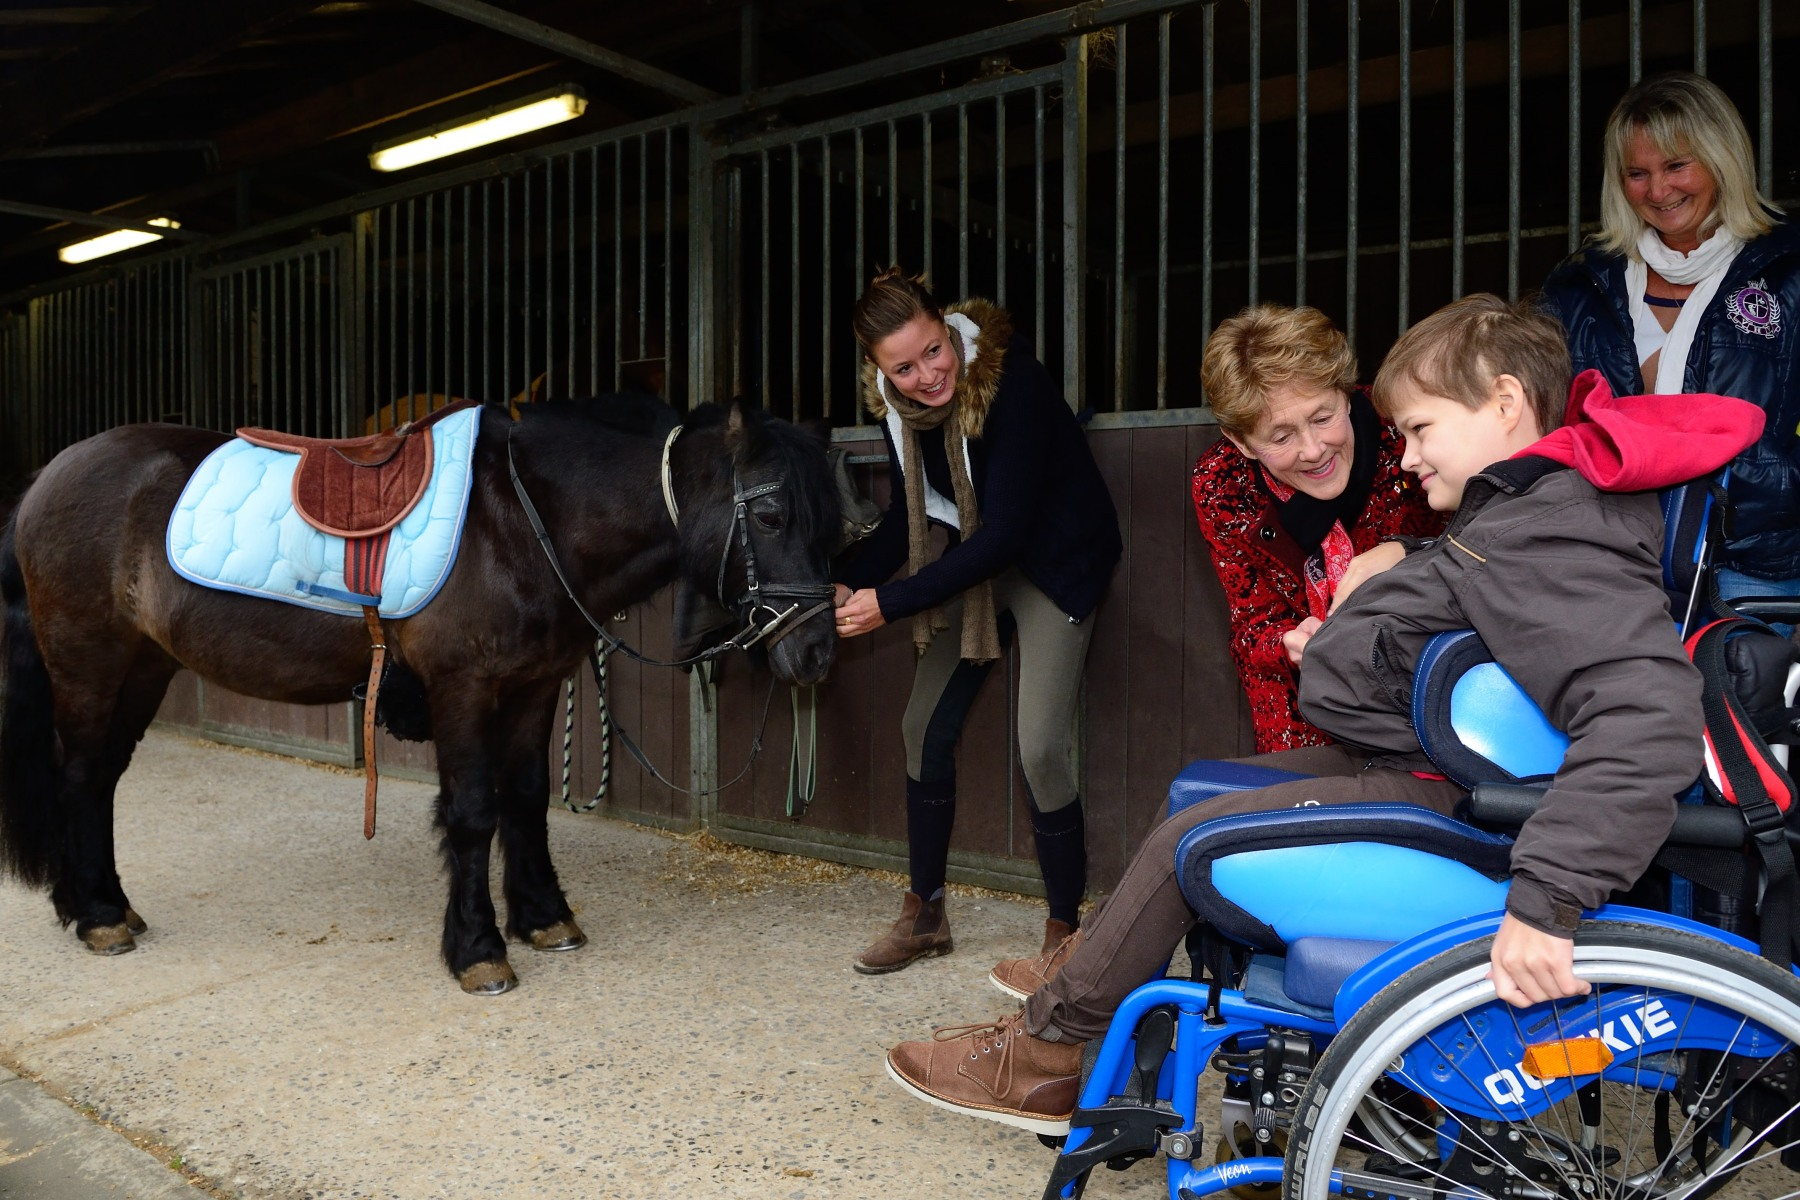 On October 29, 2014, Her Excellency visited Pony Paradise, a hippotherapy centre based in Brussels.